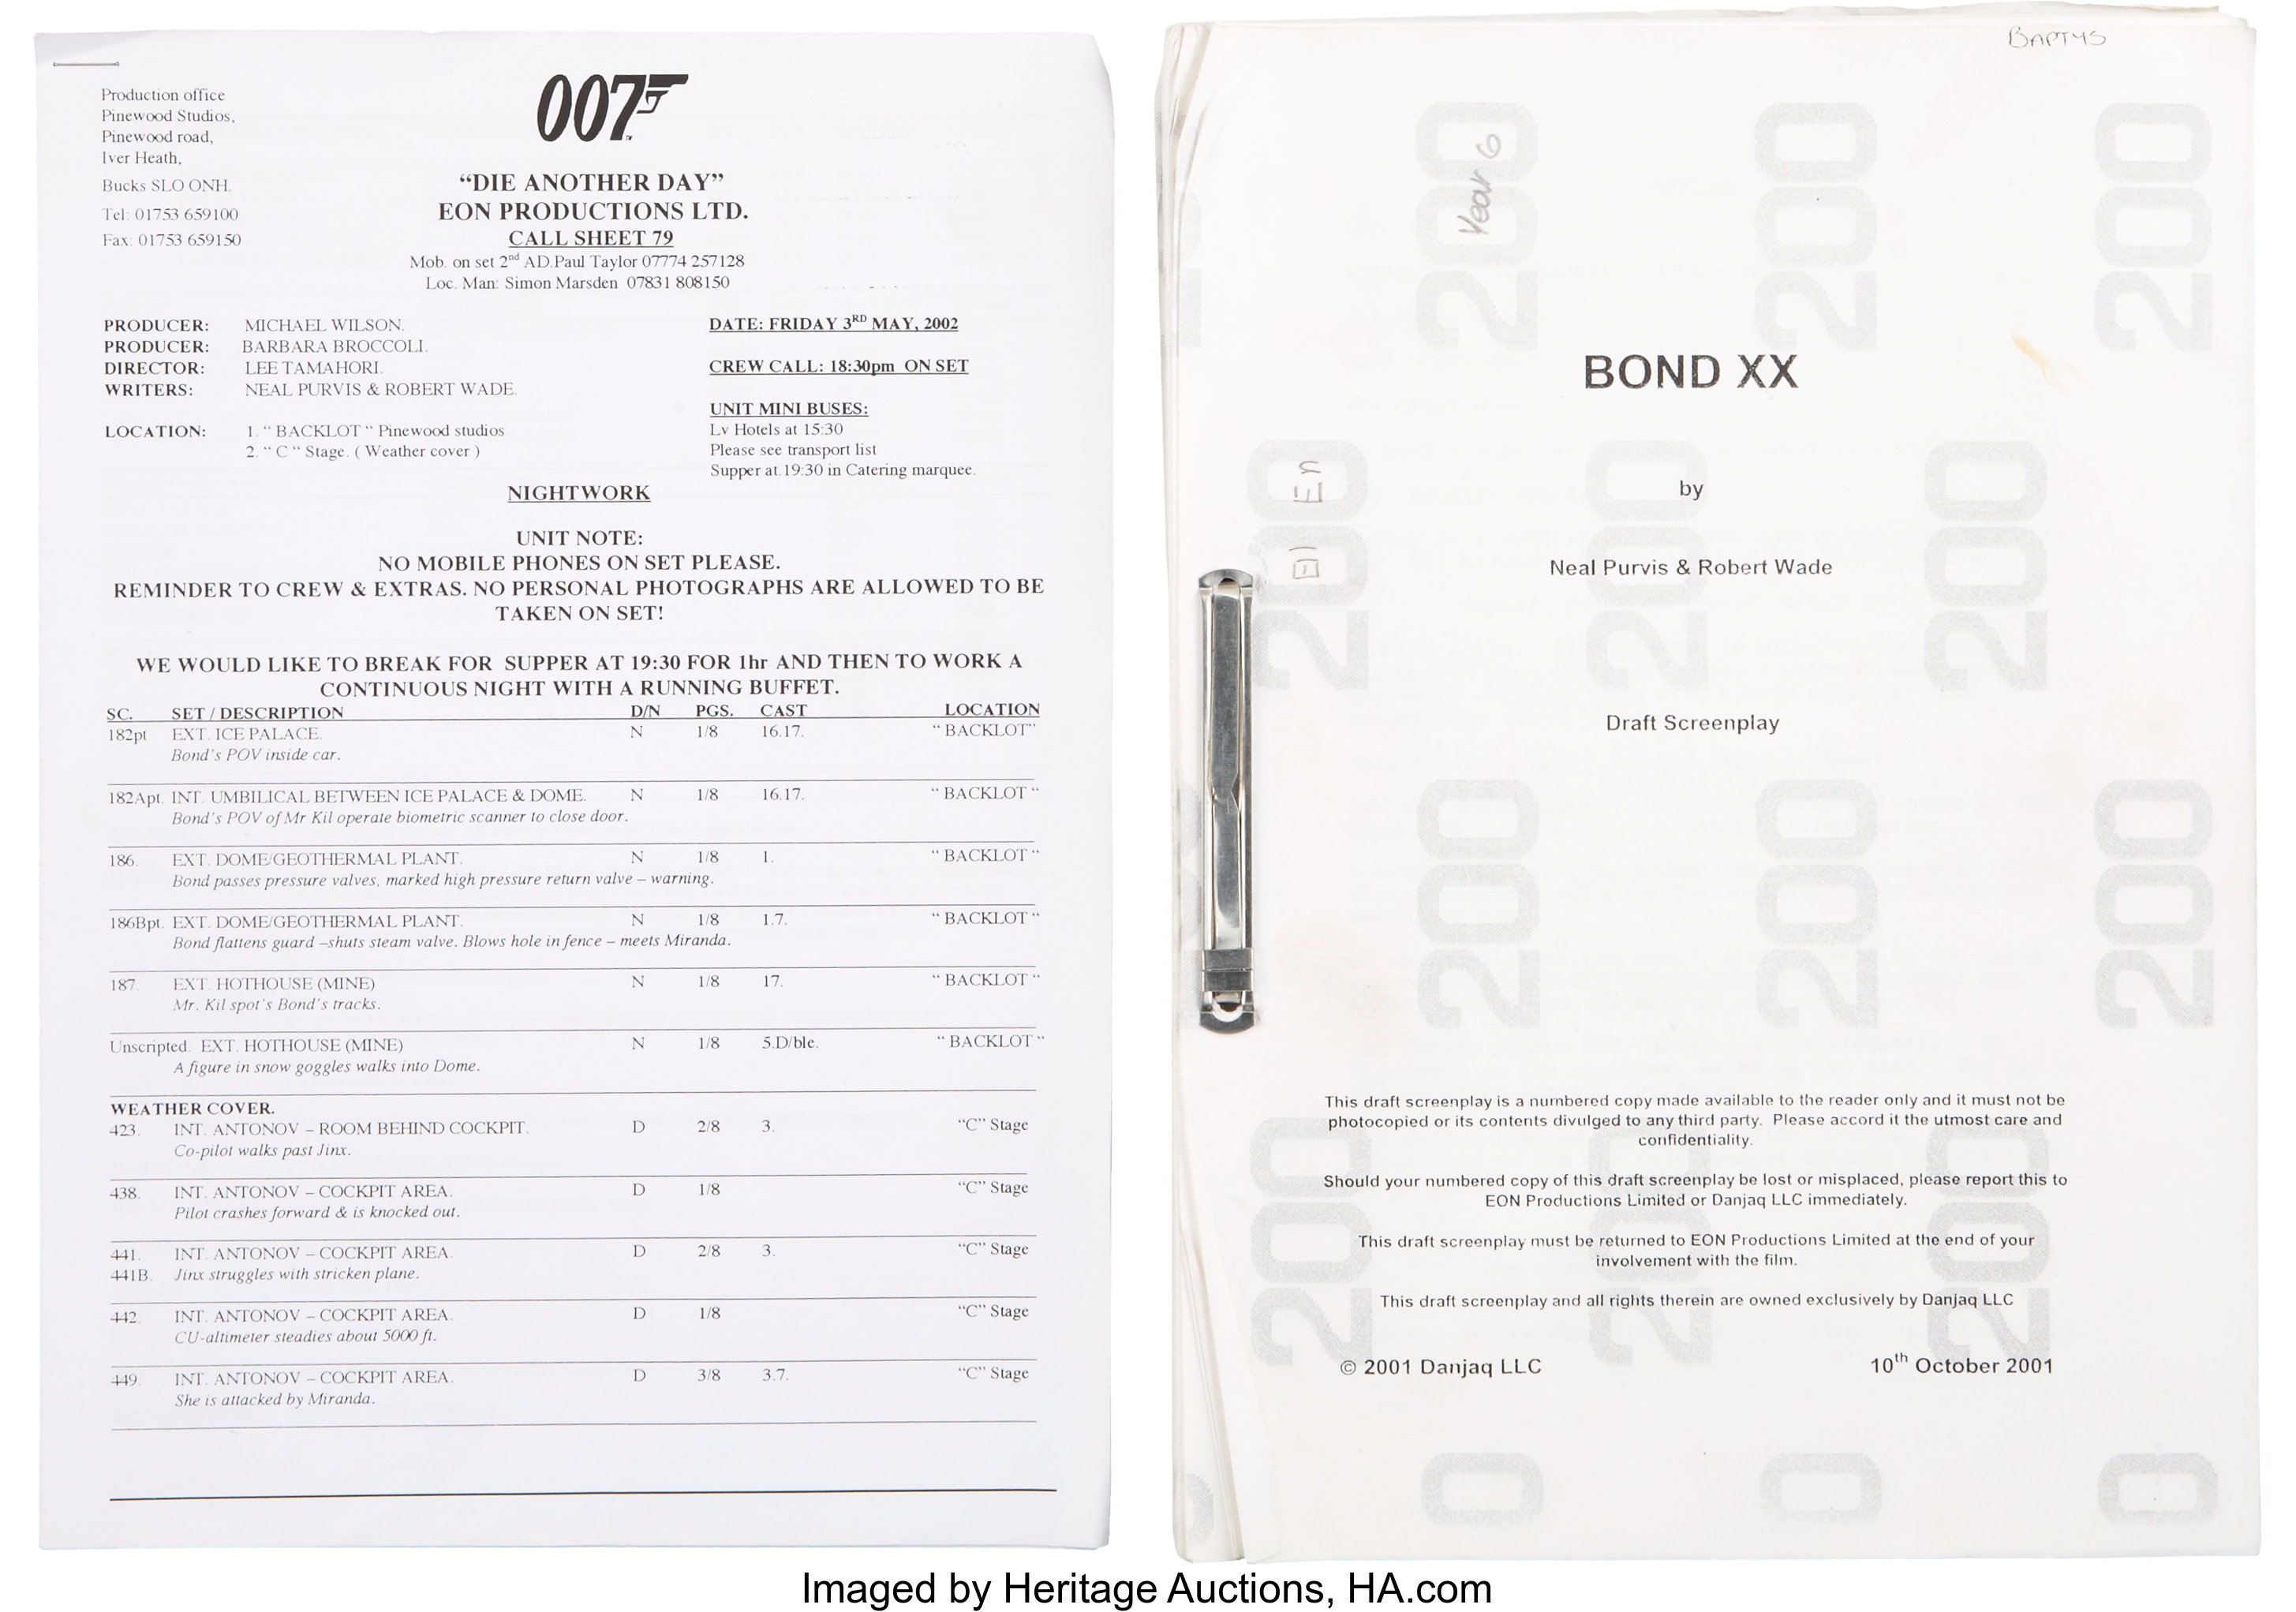 James Bond Die Another Day Numbered Script with Call Sheets